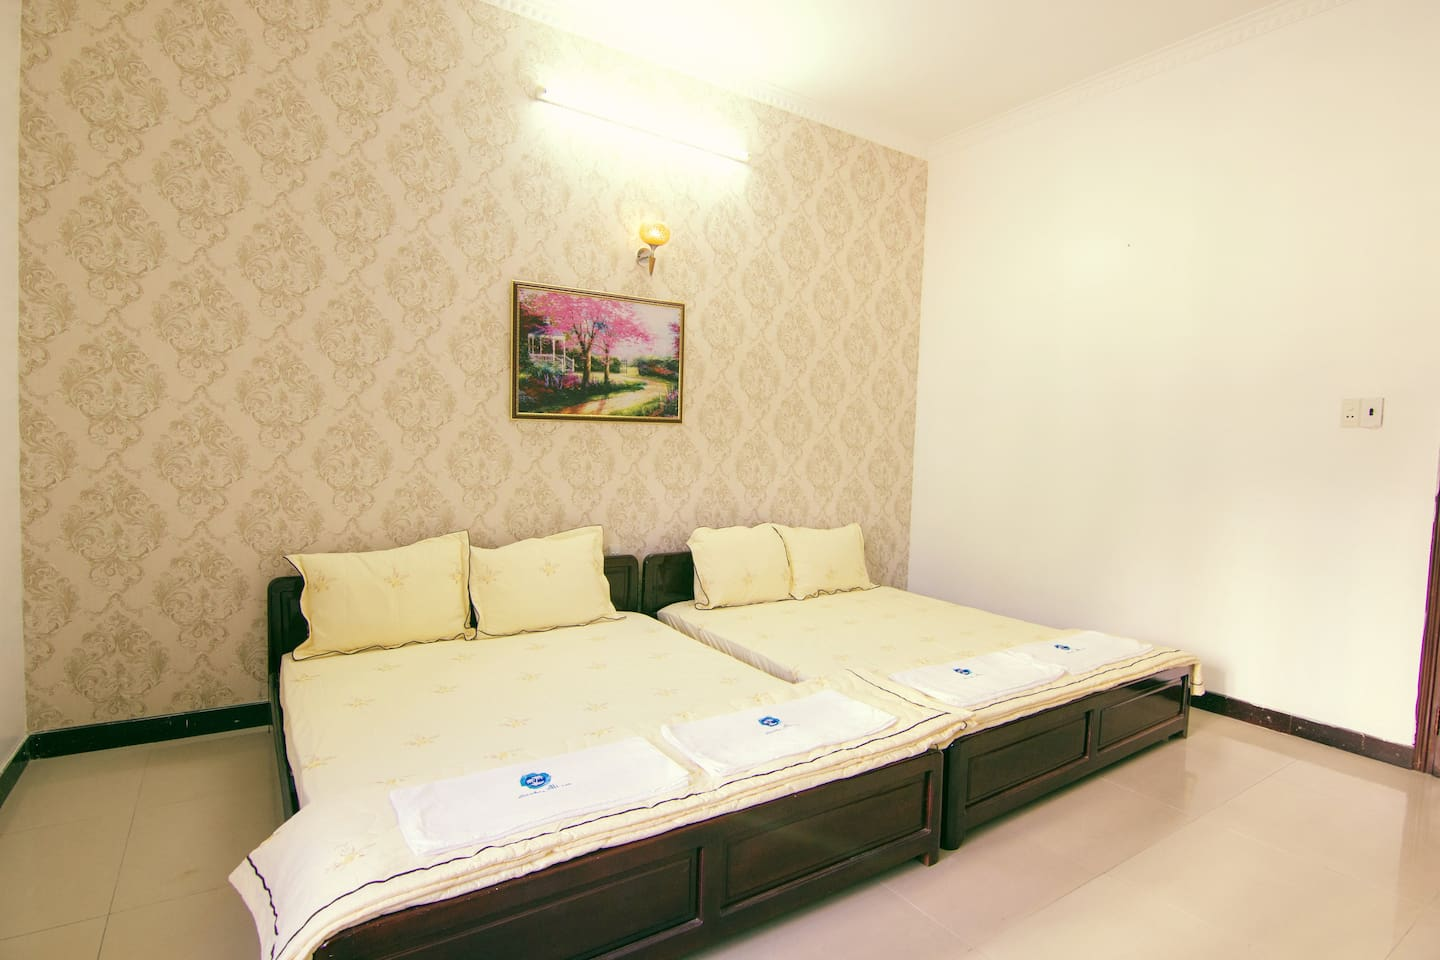 Bedroom 304 has two comfortable double beds for great night's sleep